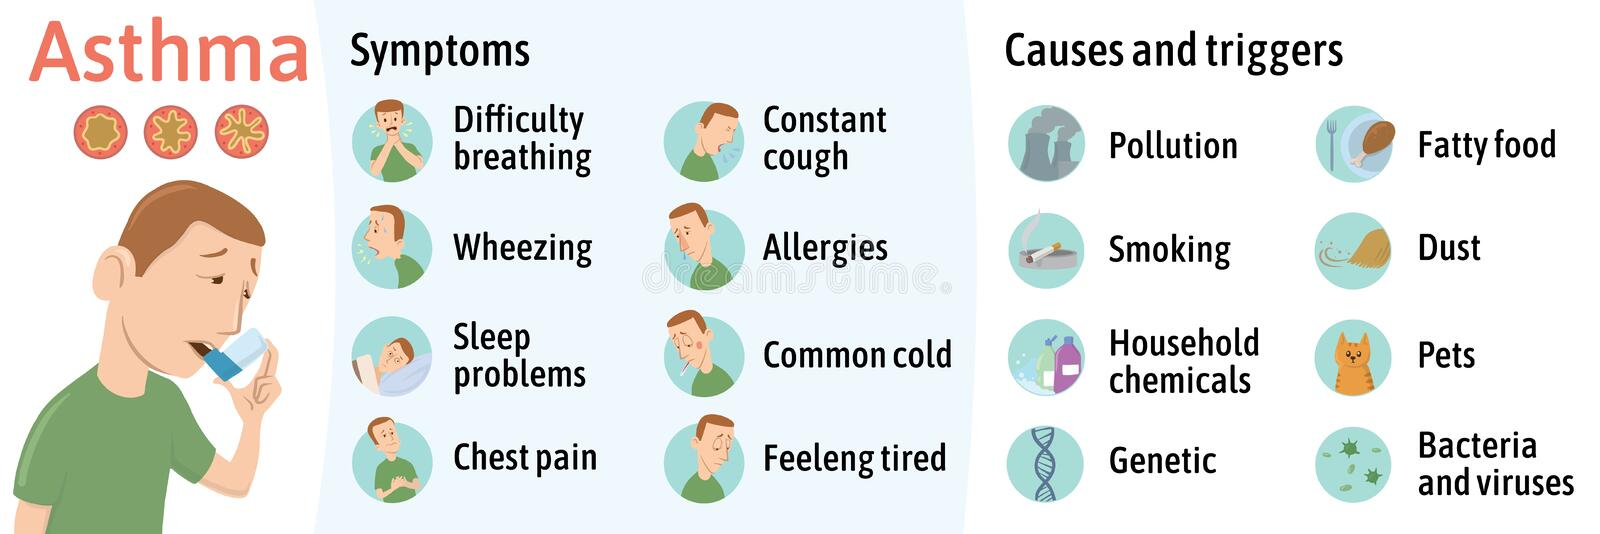 The symptoms and causes of asthma, infographics. Vector illustration for medical journal or brochure. Young man using royalty free illustration